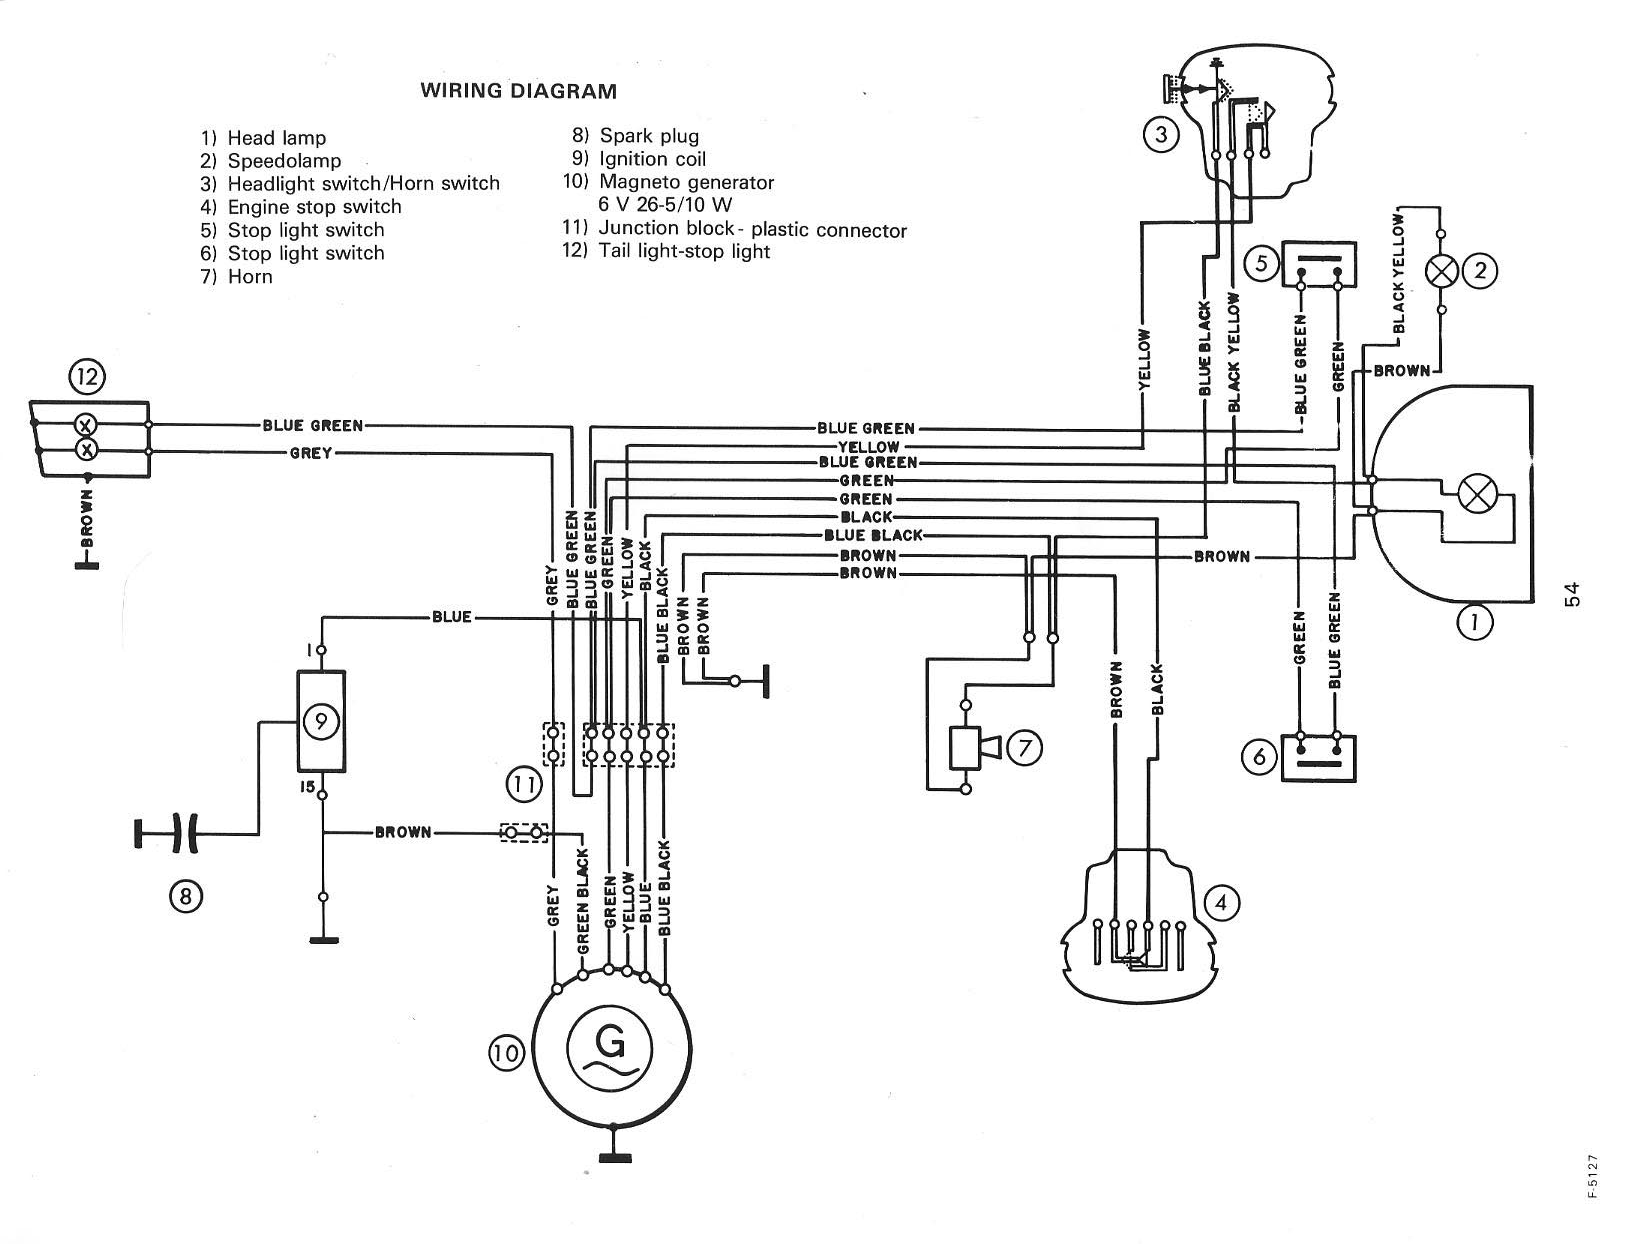 Puch_Murray_wiring_diagram puch wiring diagrams moped wiki  at bakdesigns.co